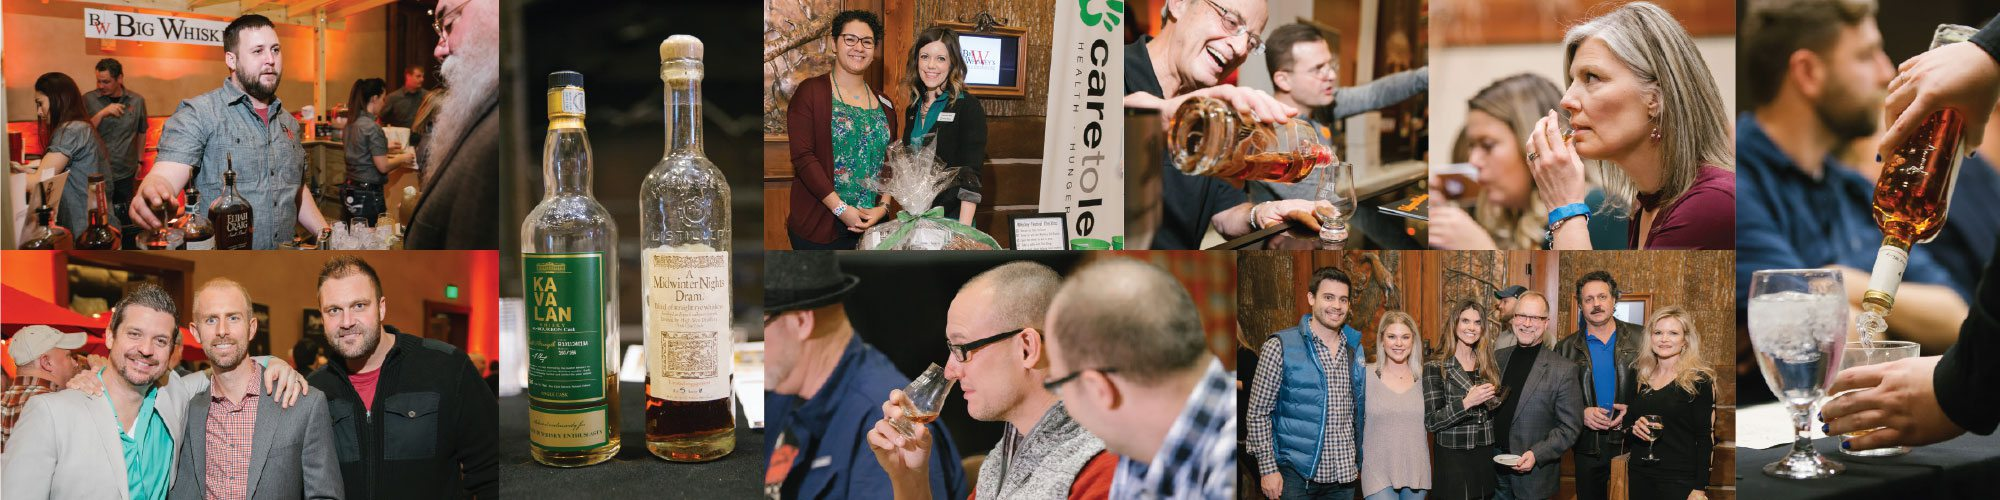 417 Magazine's Whiskey Festival Event Images